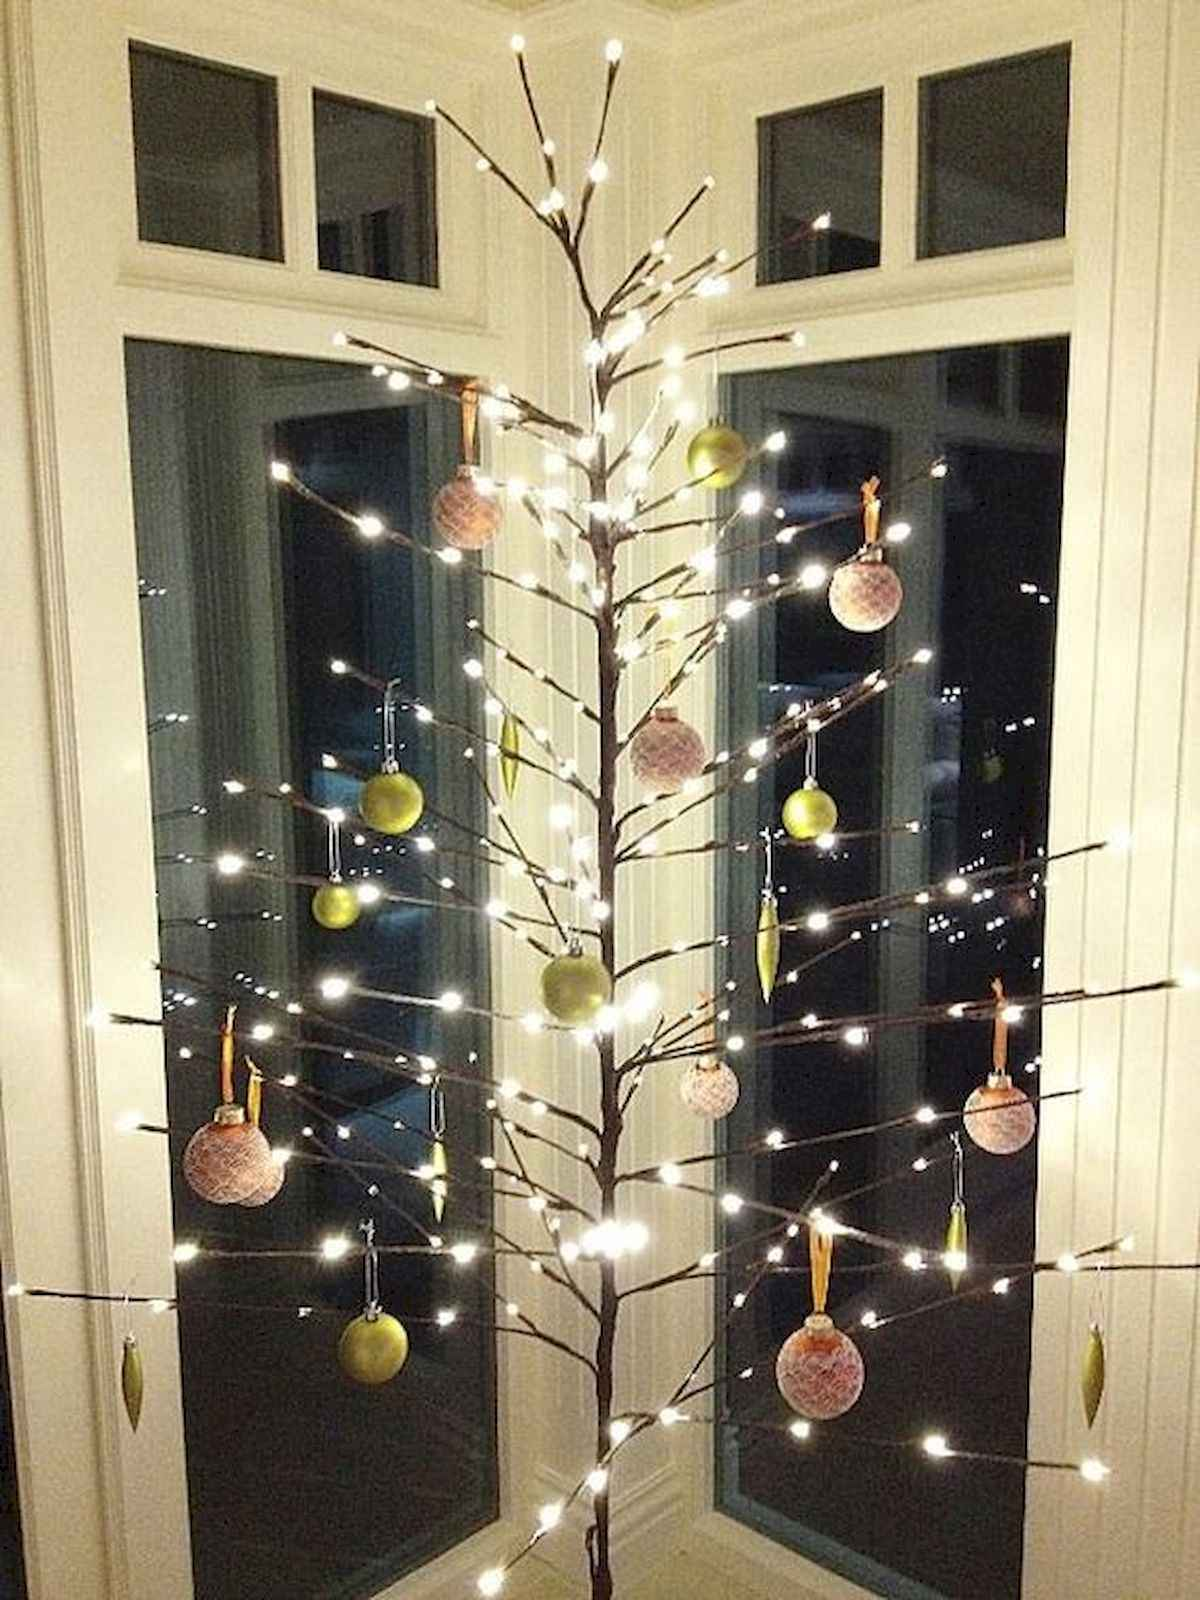 60 awesome christmas tree decorations ideas (35)